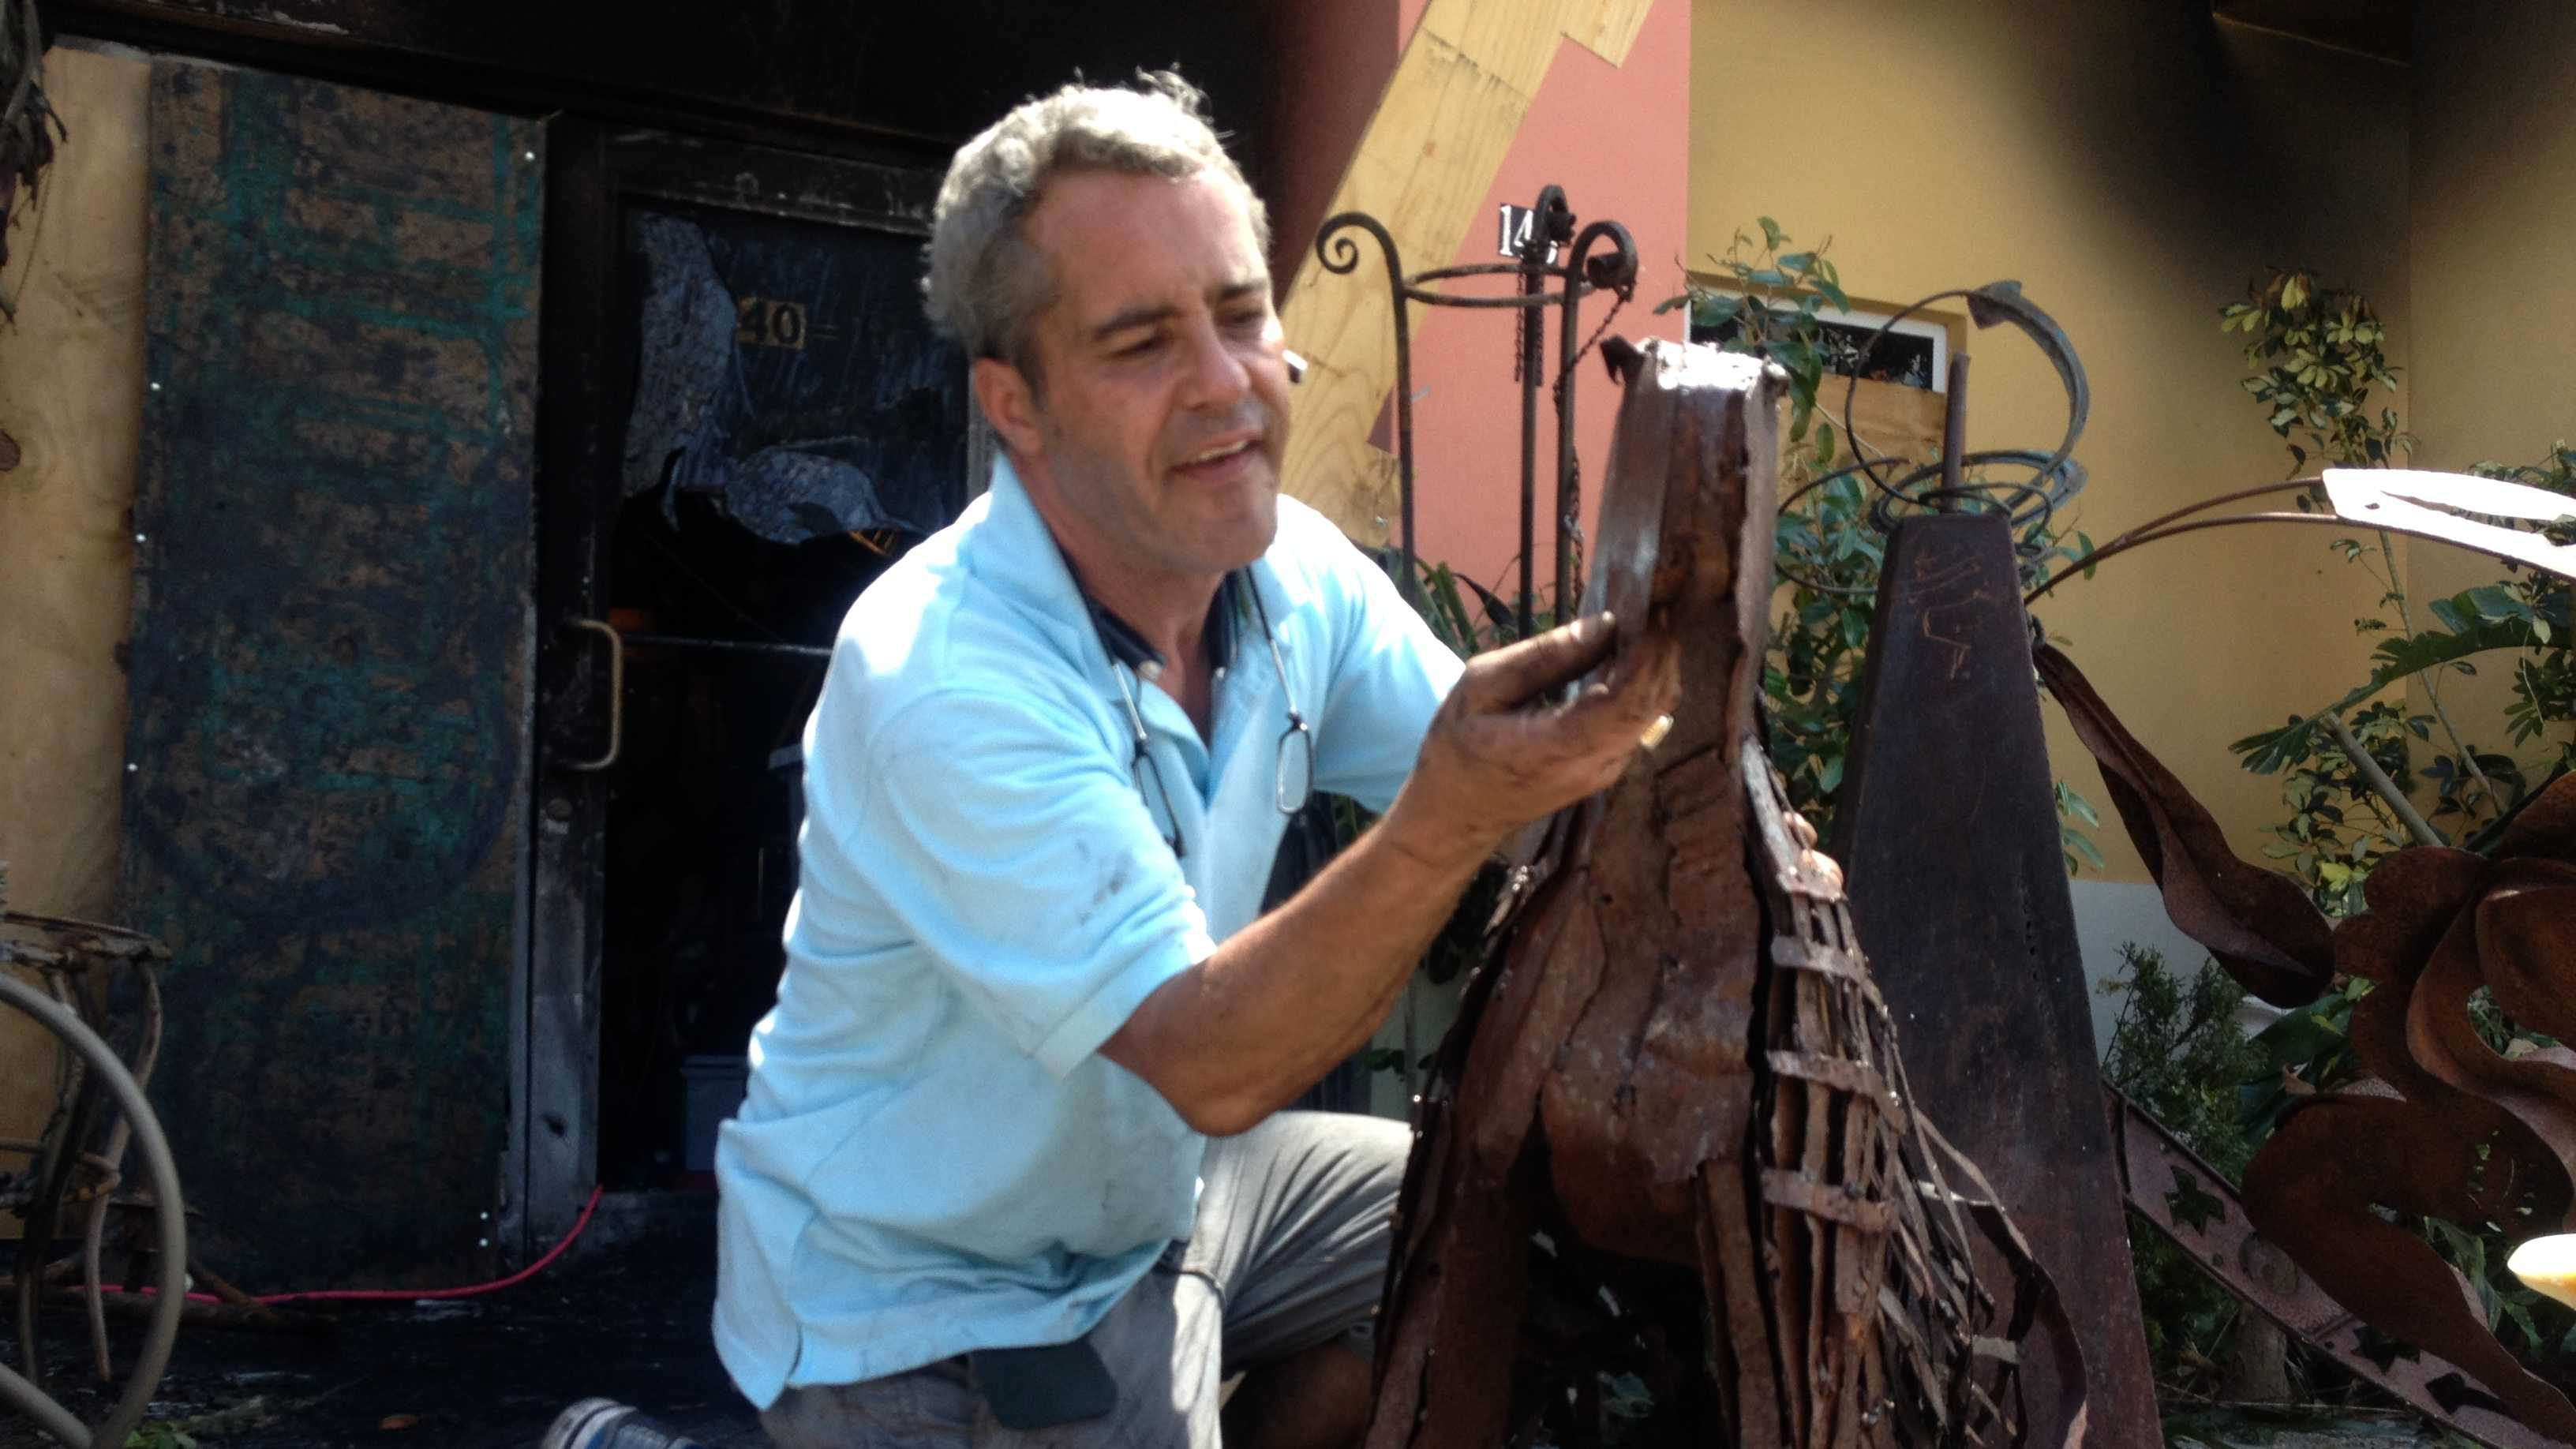 Carlos Costa had part of his precious art collection destroyed by fire in Boca Raton early Tuesday morning.